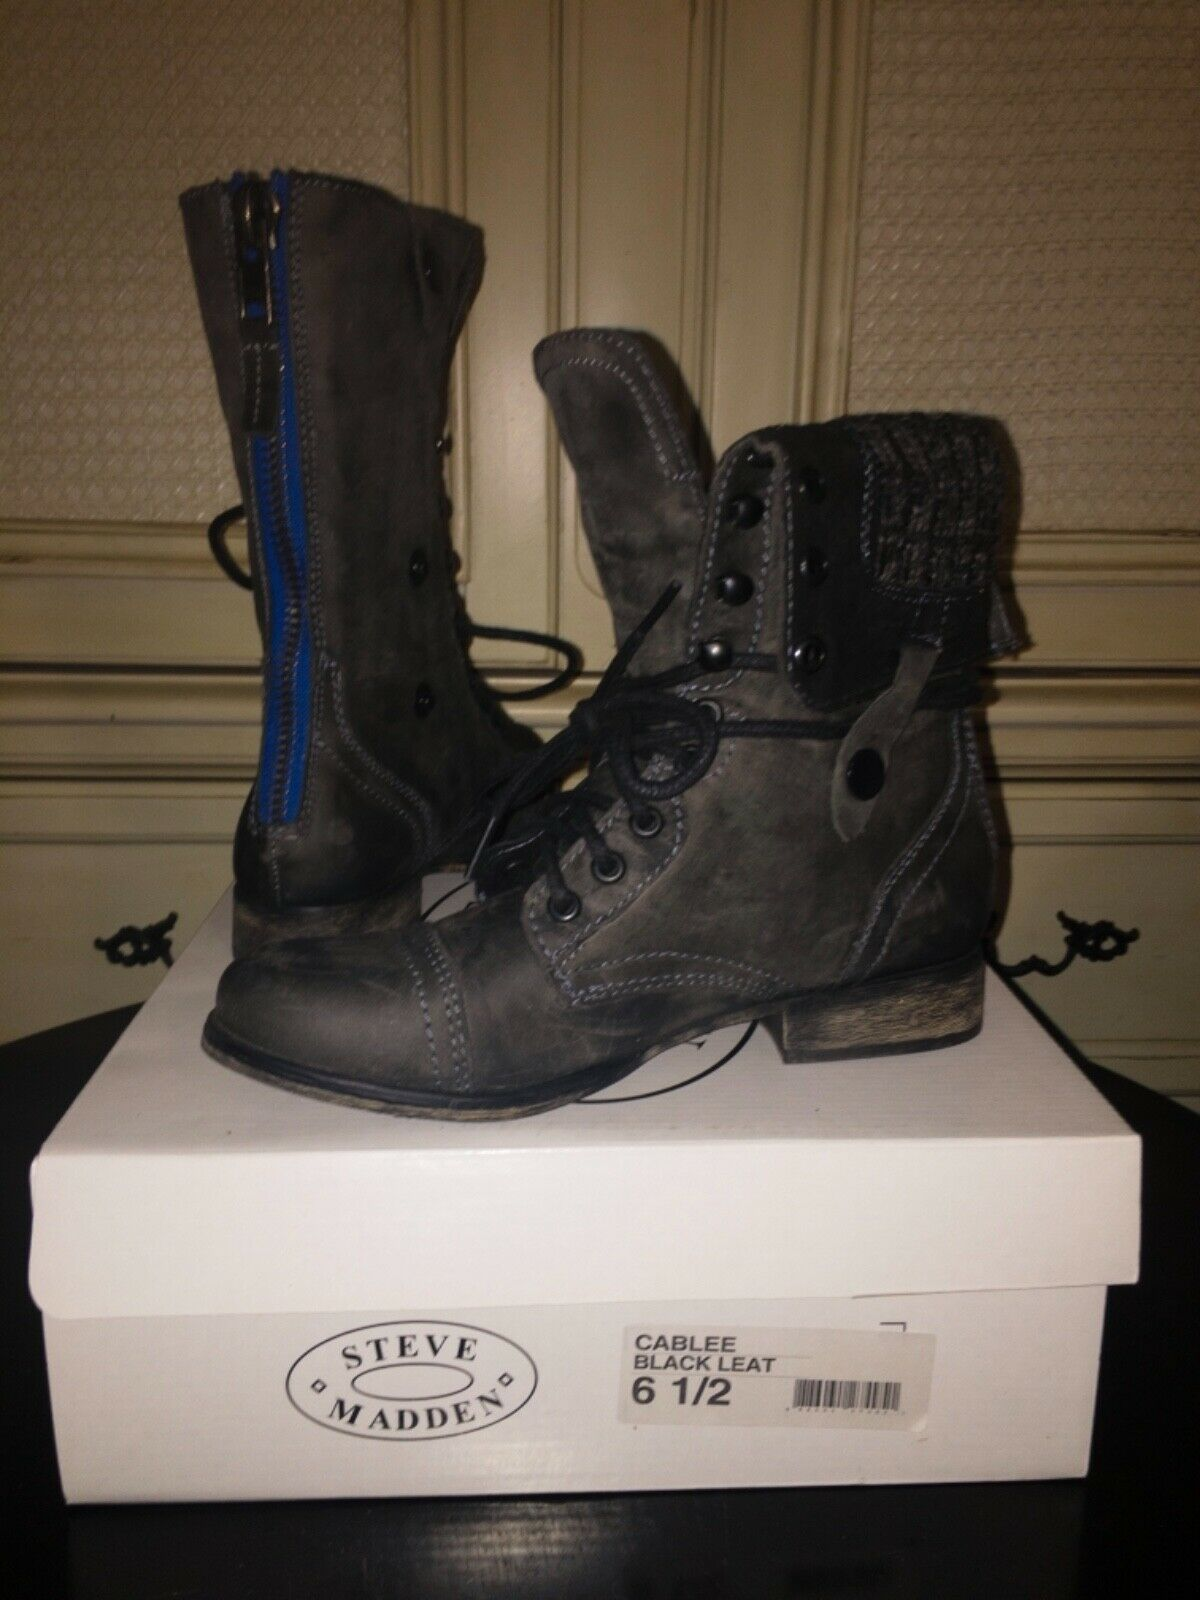 NEW Steve Madden CABLEE Combat Boots BLACK LEATHER Zip/Laced Women's SZ 6.5M